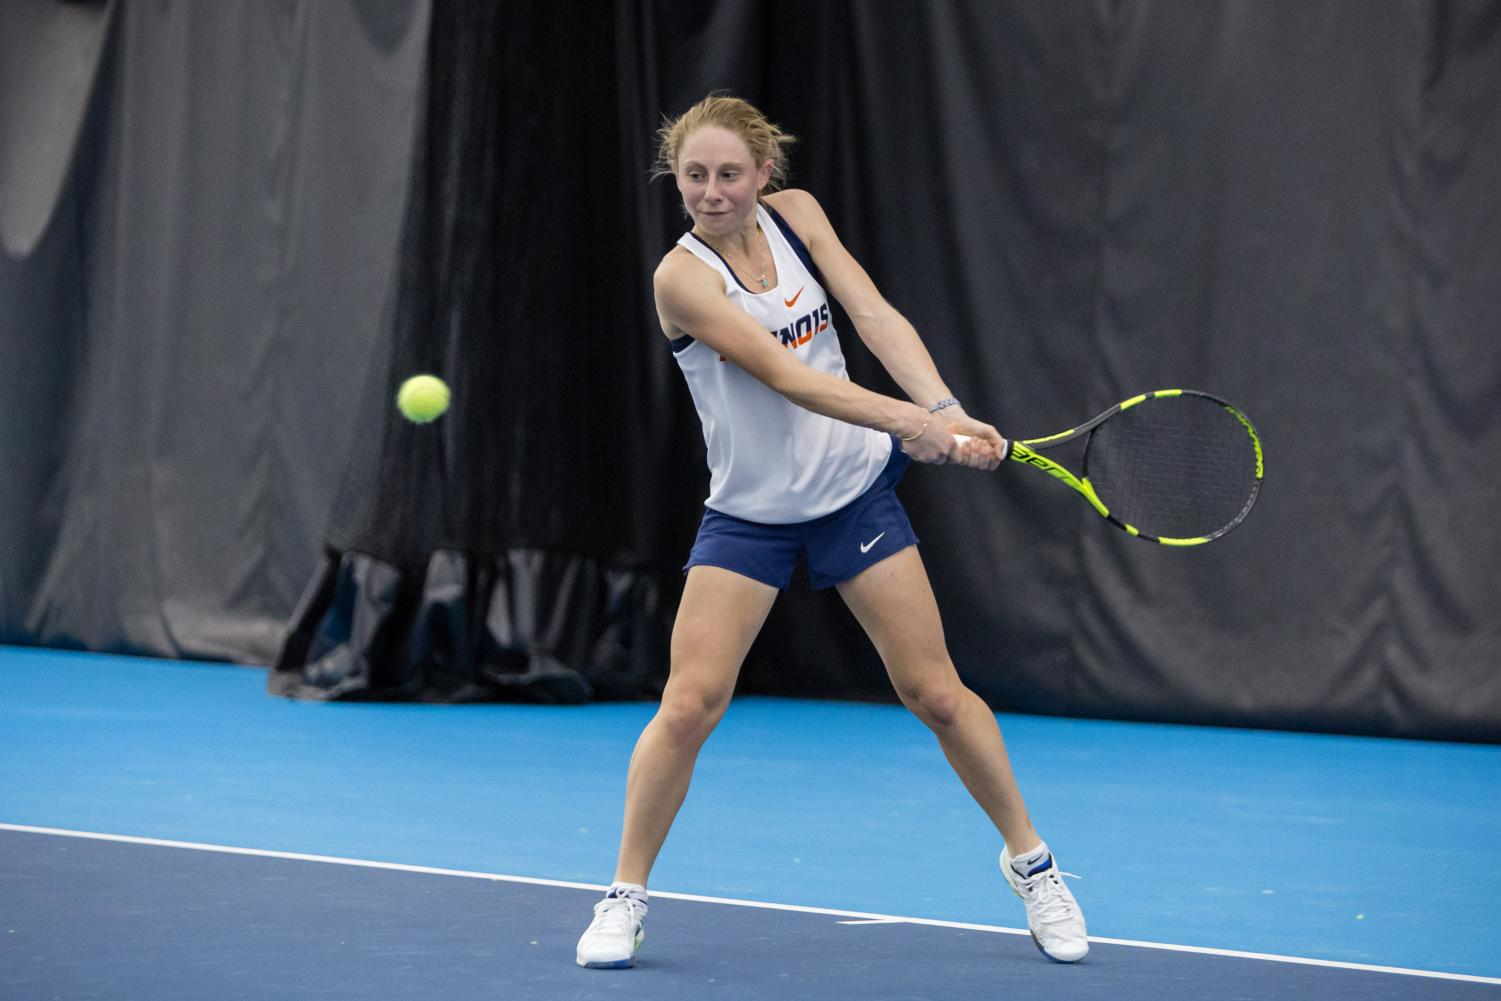 Illinois' Mia Rabinowitz gets ready to return the ball during her singles match against Texas at Atkins Tennis Center on Feb. 2, 2018. Rabinowitz won her singles match 6-2, 7-6[2], and the Illini won 4-2.